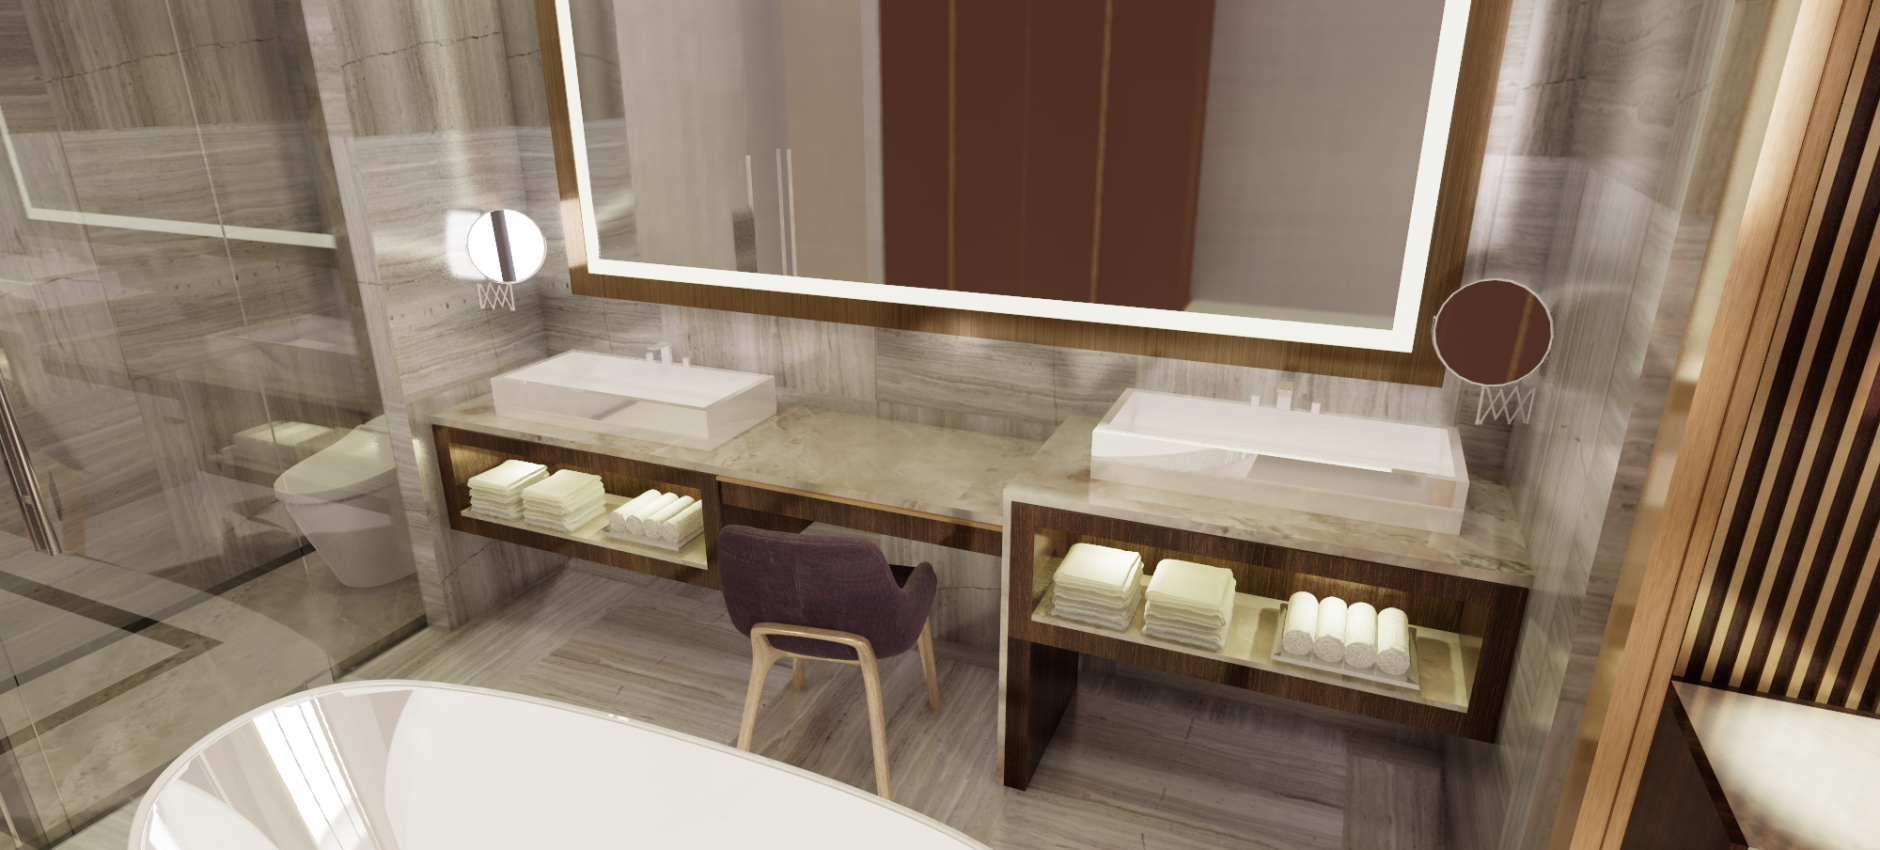 hotel_suite-02.png